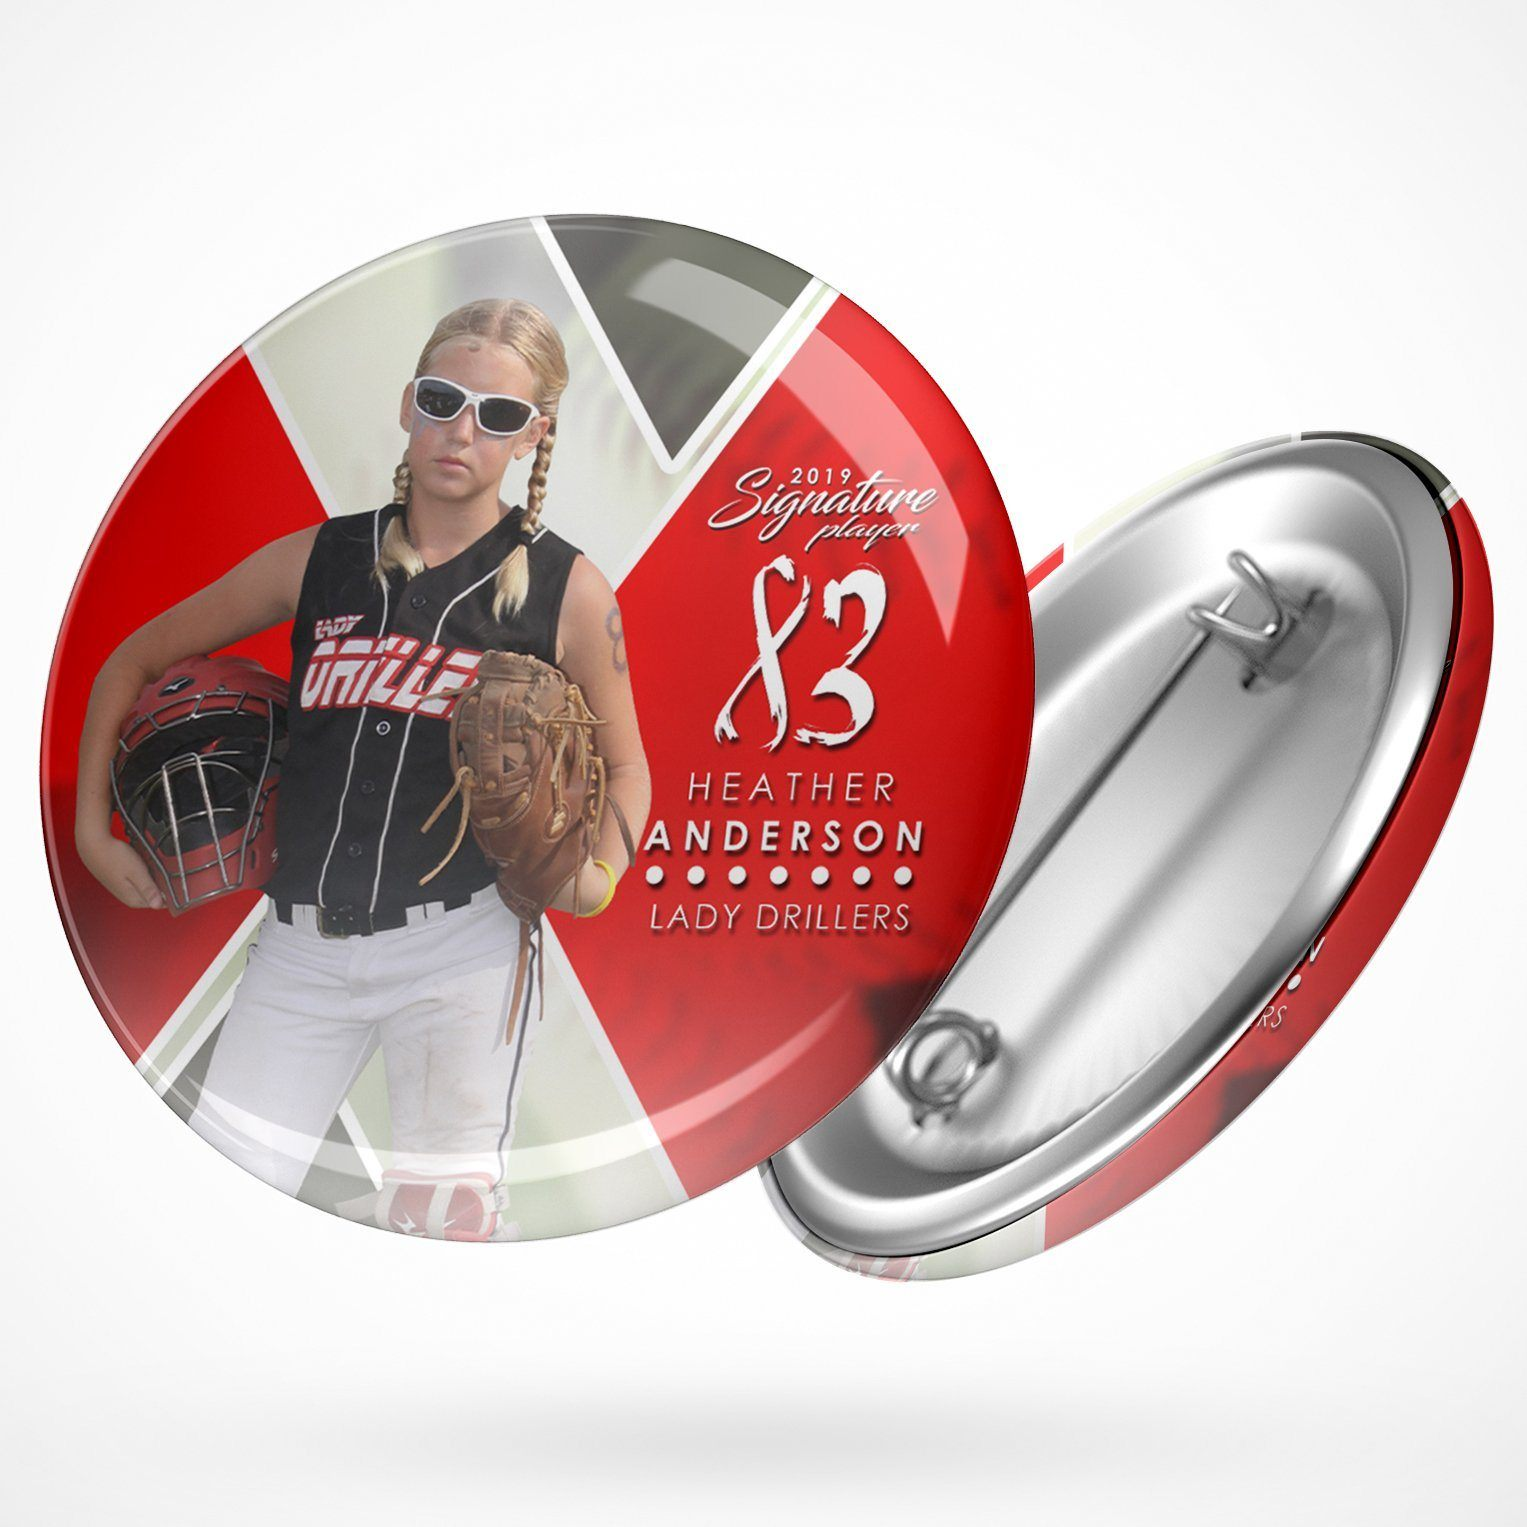 Signature Player - Softball - V2 - Extraction Button Template-Photoshop Template - Photo Solutions